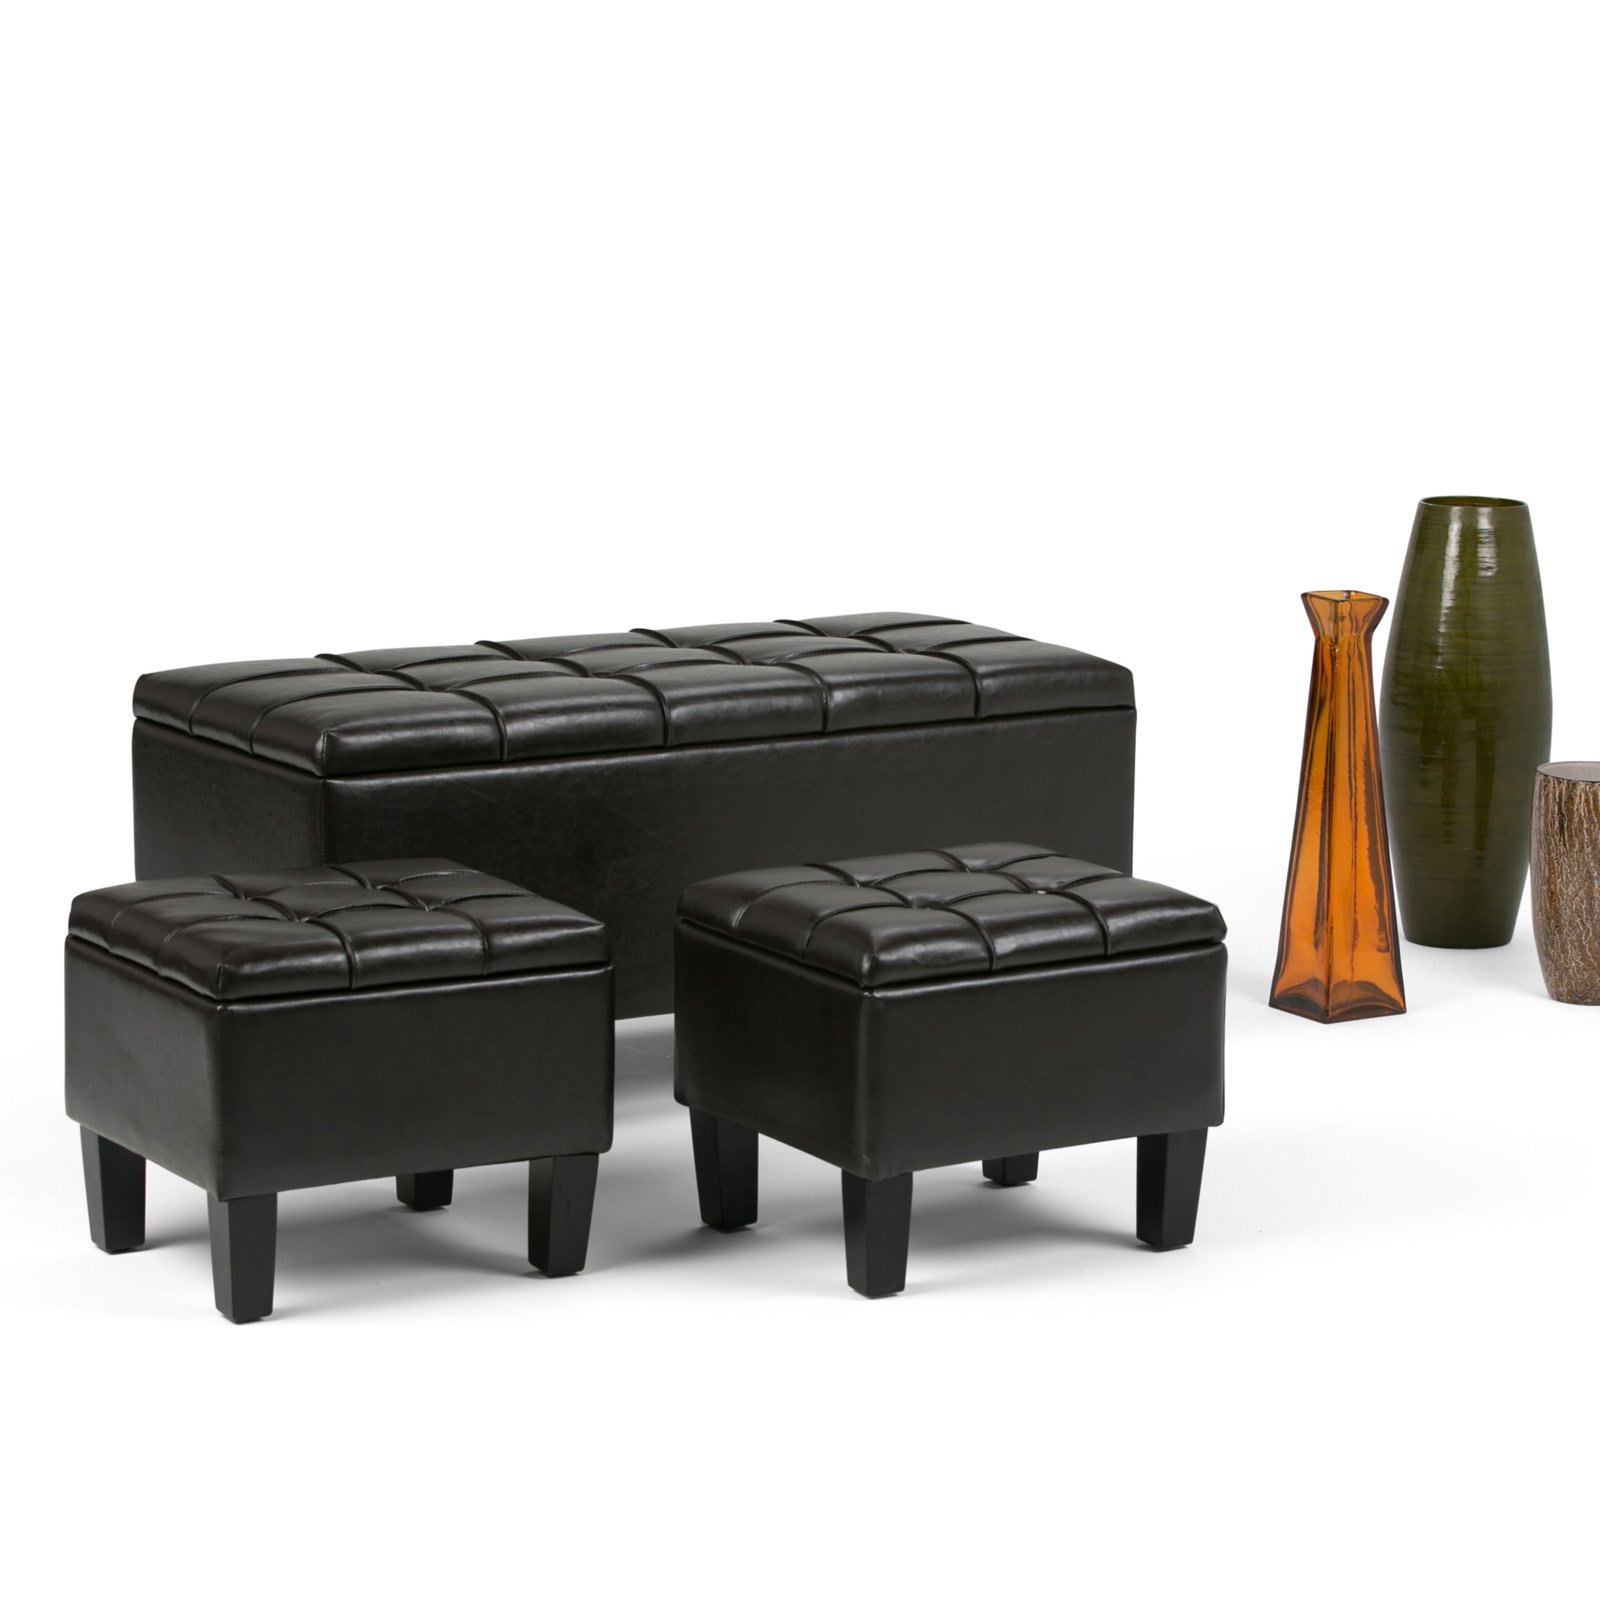 Simpli Home Dover 3 Piece Storage Ottoman Bench